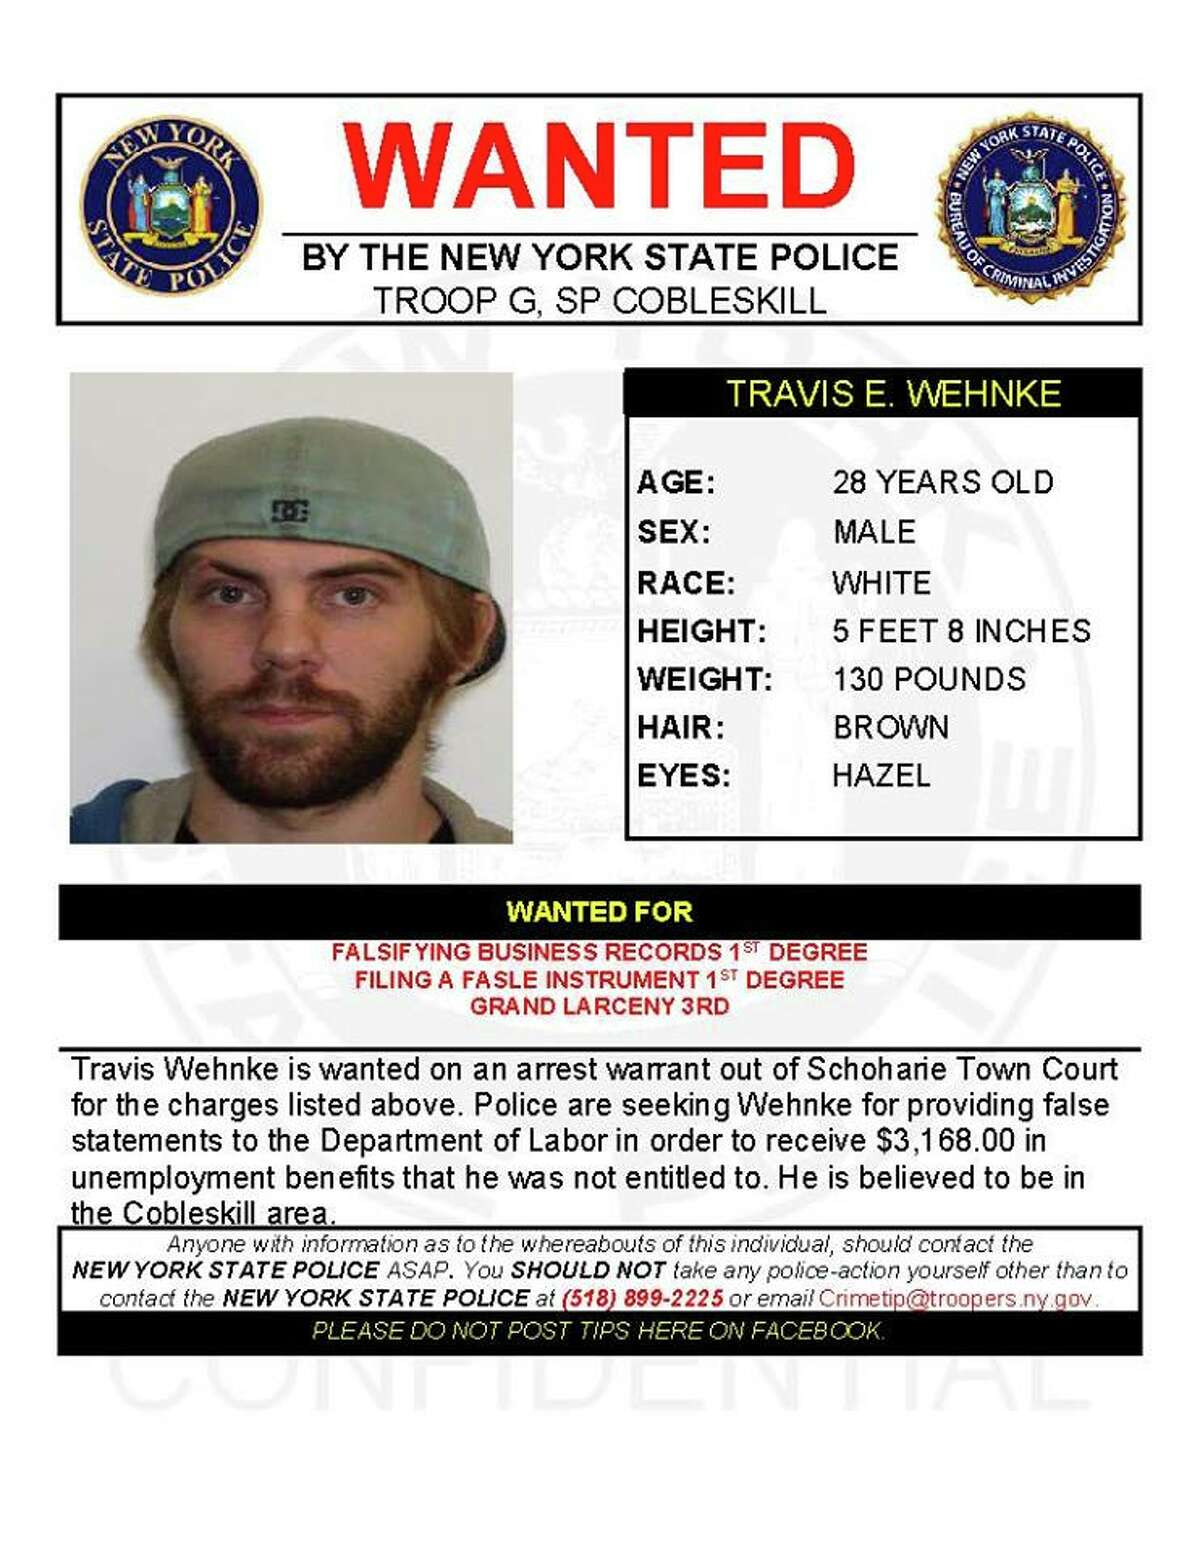 Travis E. Wehnke, 28, is wanted on an arrest warrant out of Schoharie Town Court for falsifying business records, filing a false instrument and grand larceny. Police said Wehnke provided false statements to the Department of Labor to receive $3,168 in unemployment benefits that he was not entitled to. He is believed to be in the Cobleskill area.